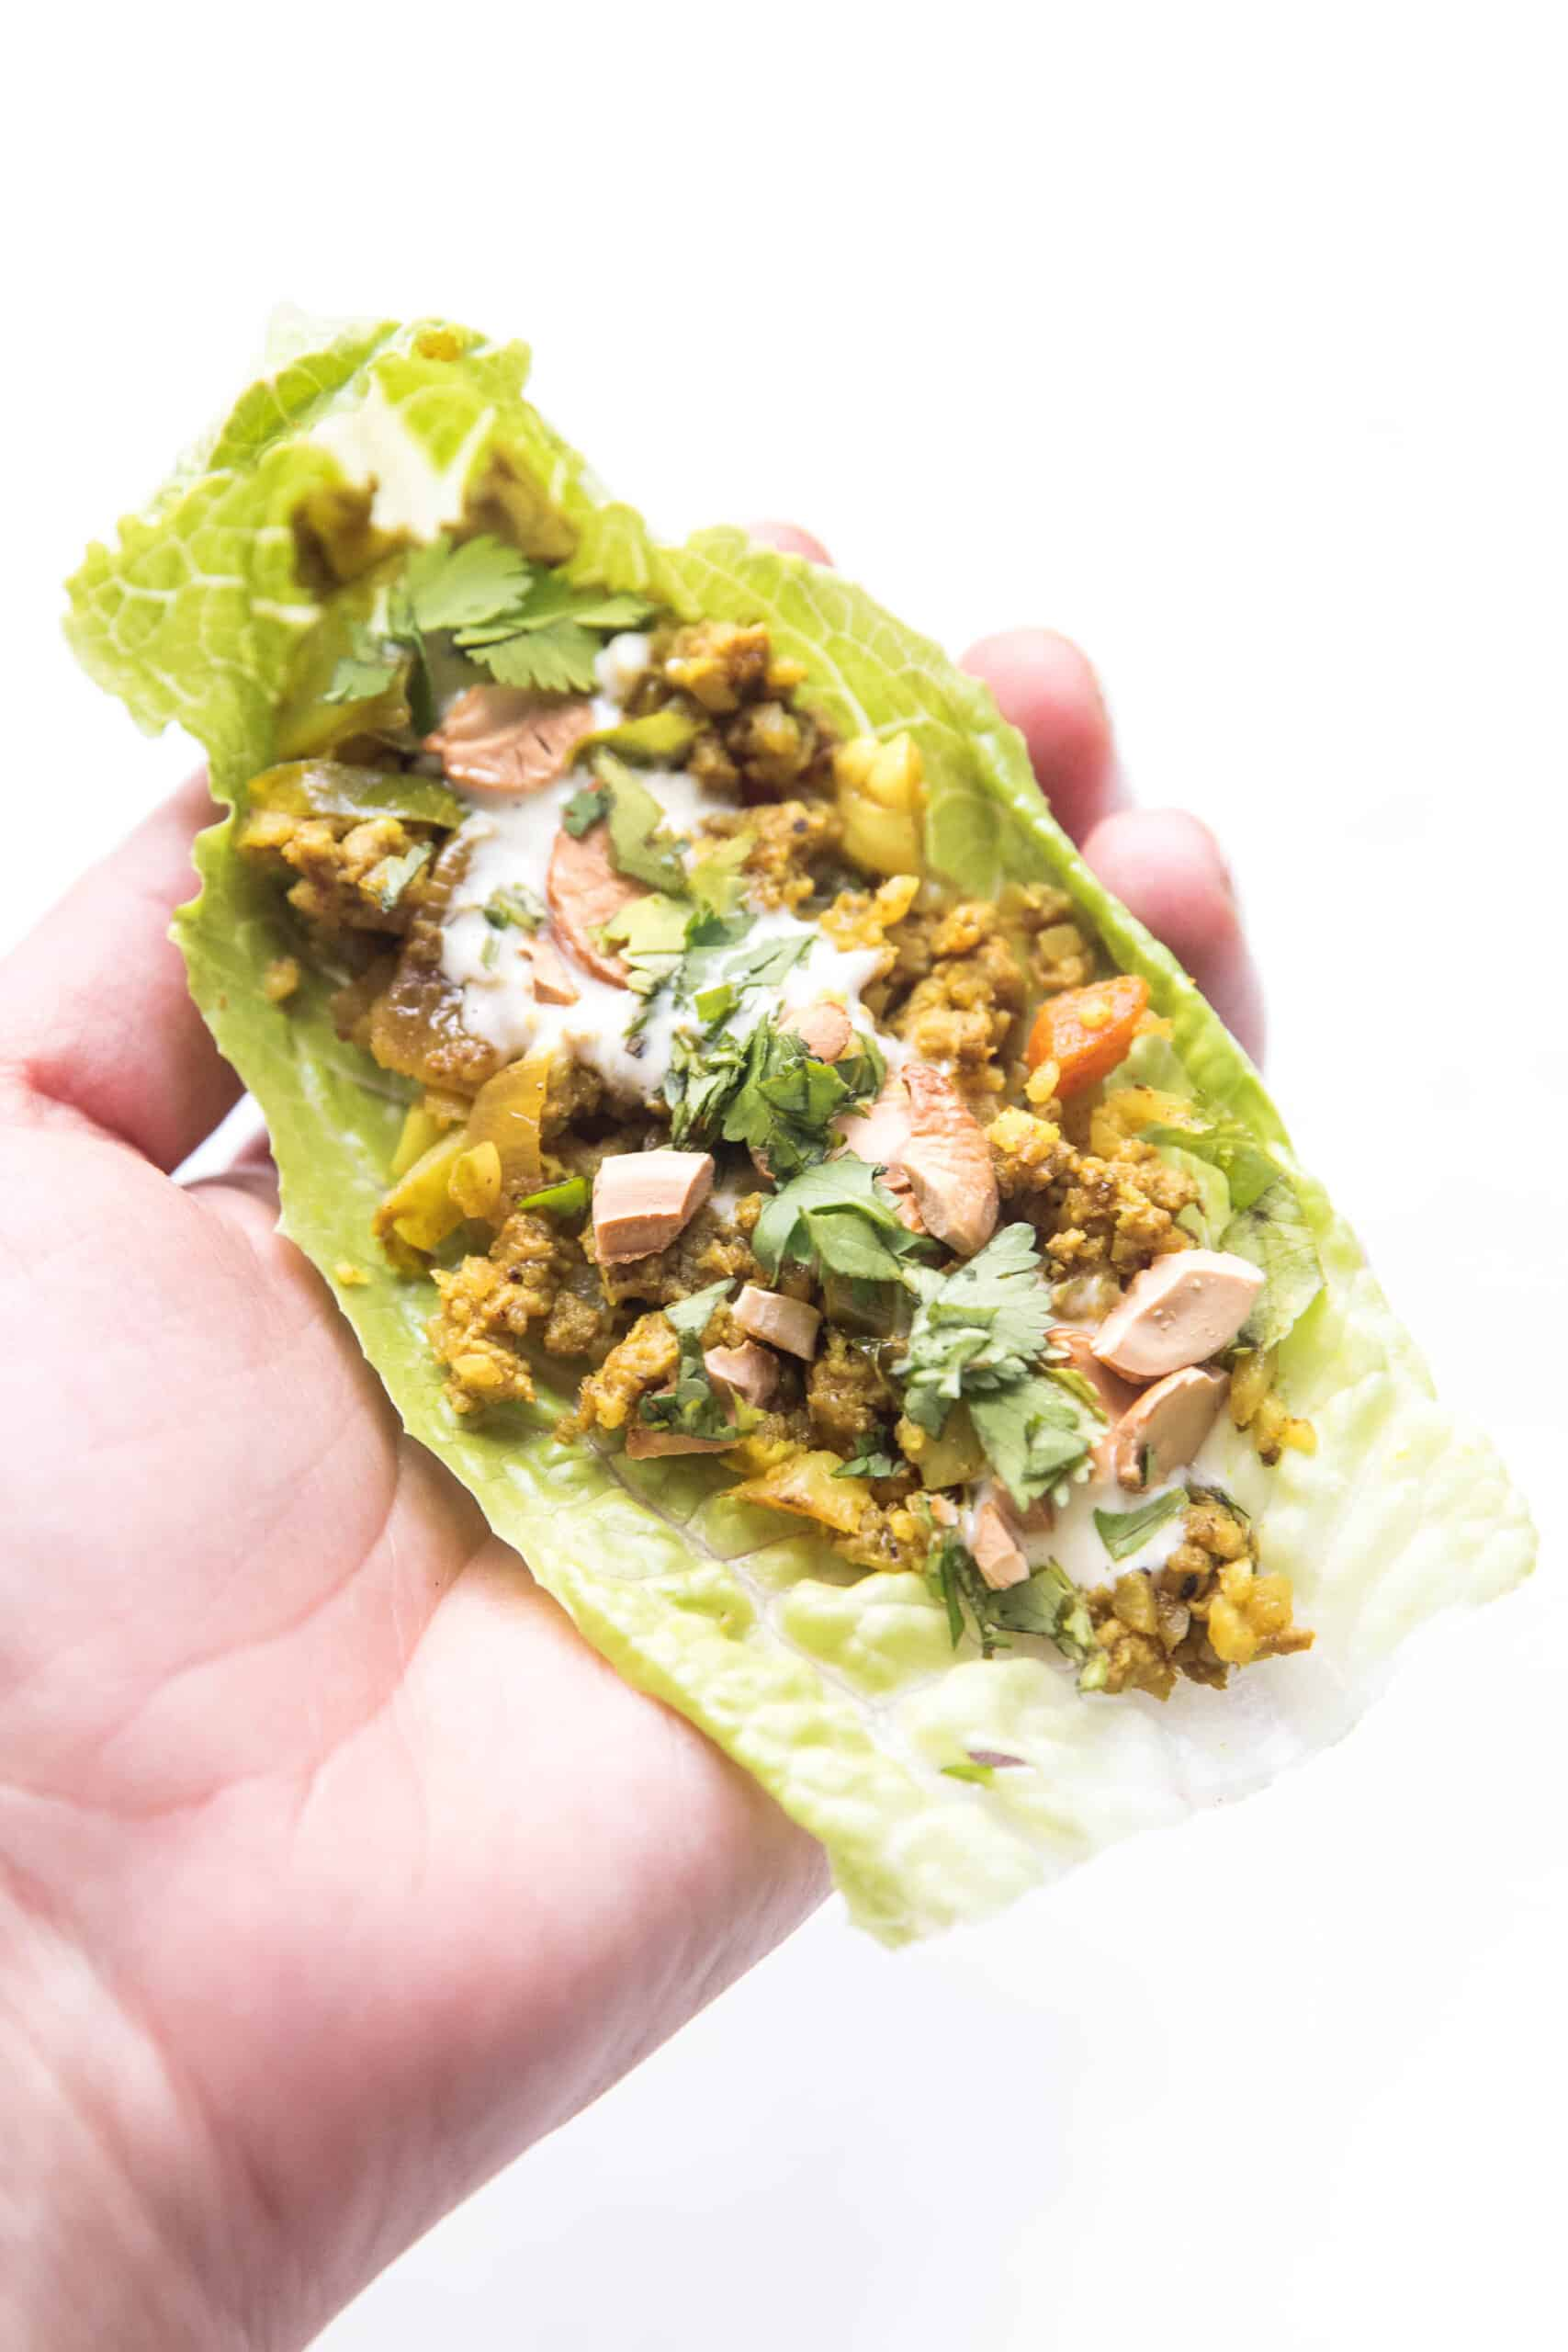 Curry lettuce wraps with cashews and cilantro in a hand